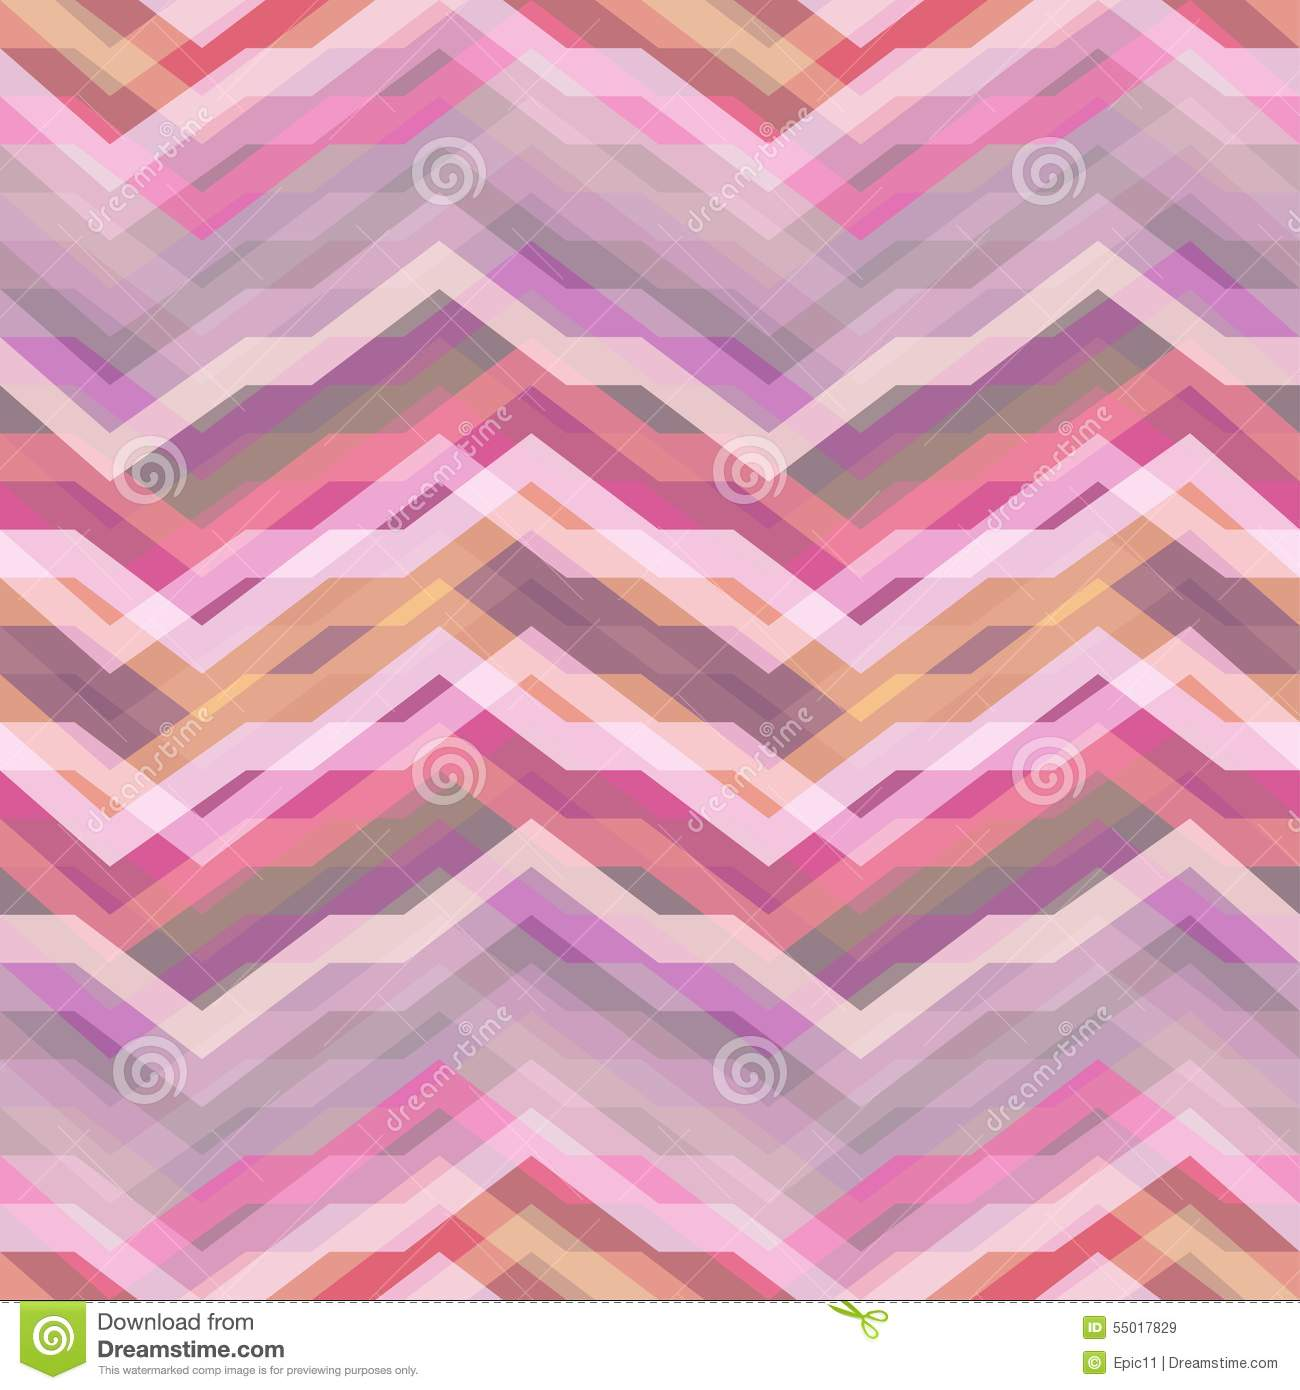 Seamless Pink Abstract Retro Vector Background